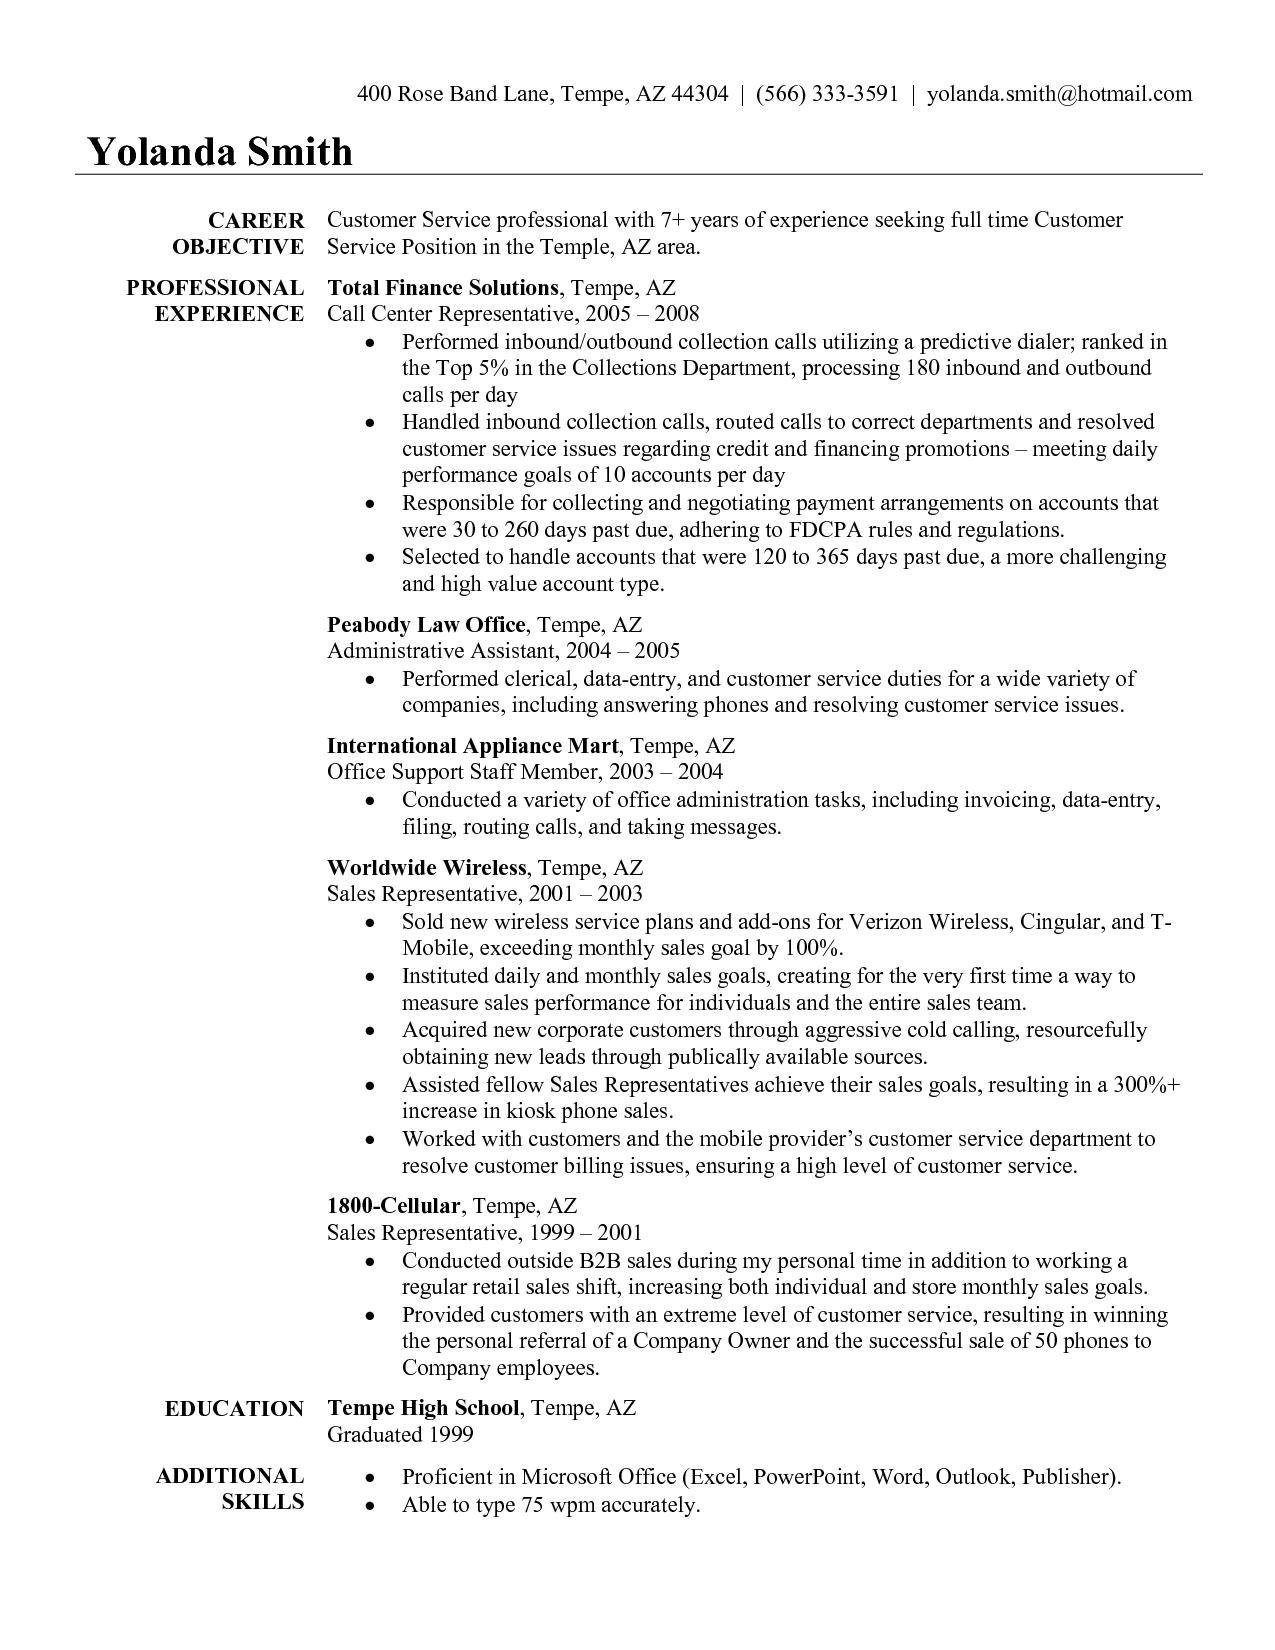 traffic customer resume examplescustomer service resume examplescustomer service resume examples